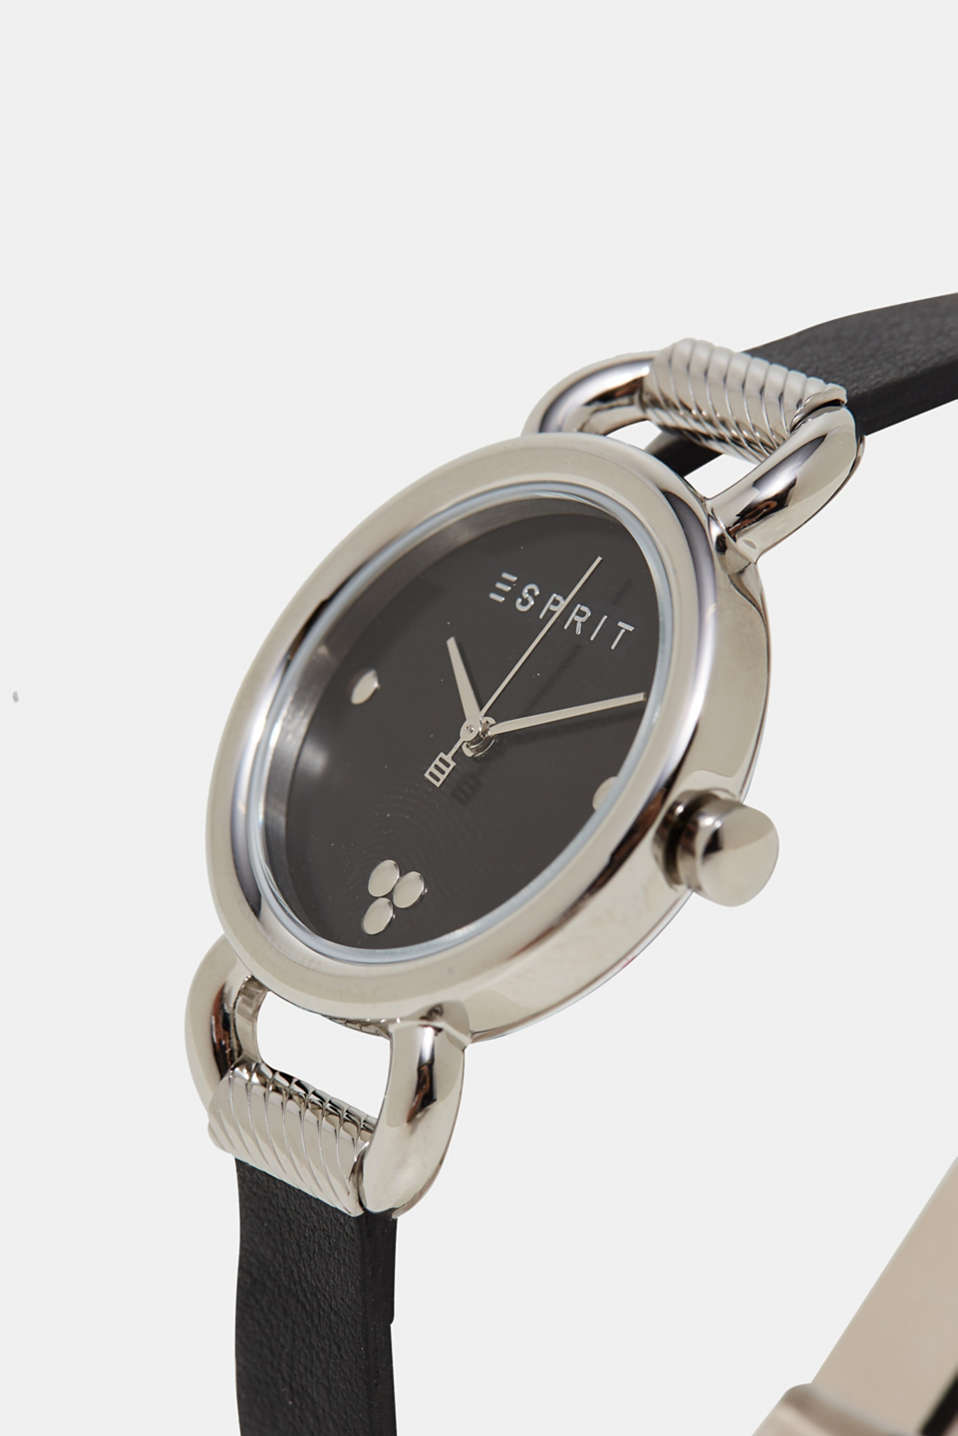 Stainless steel watch, leather wrap-around